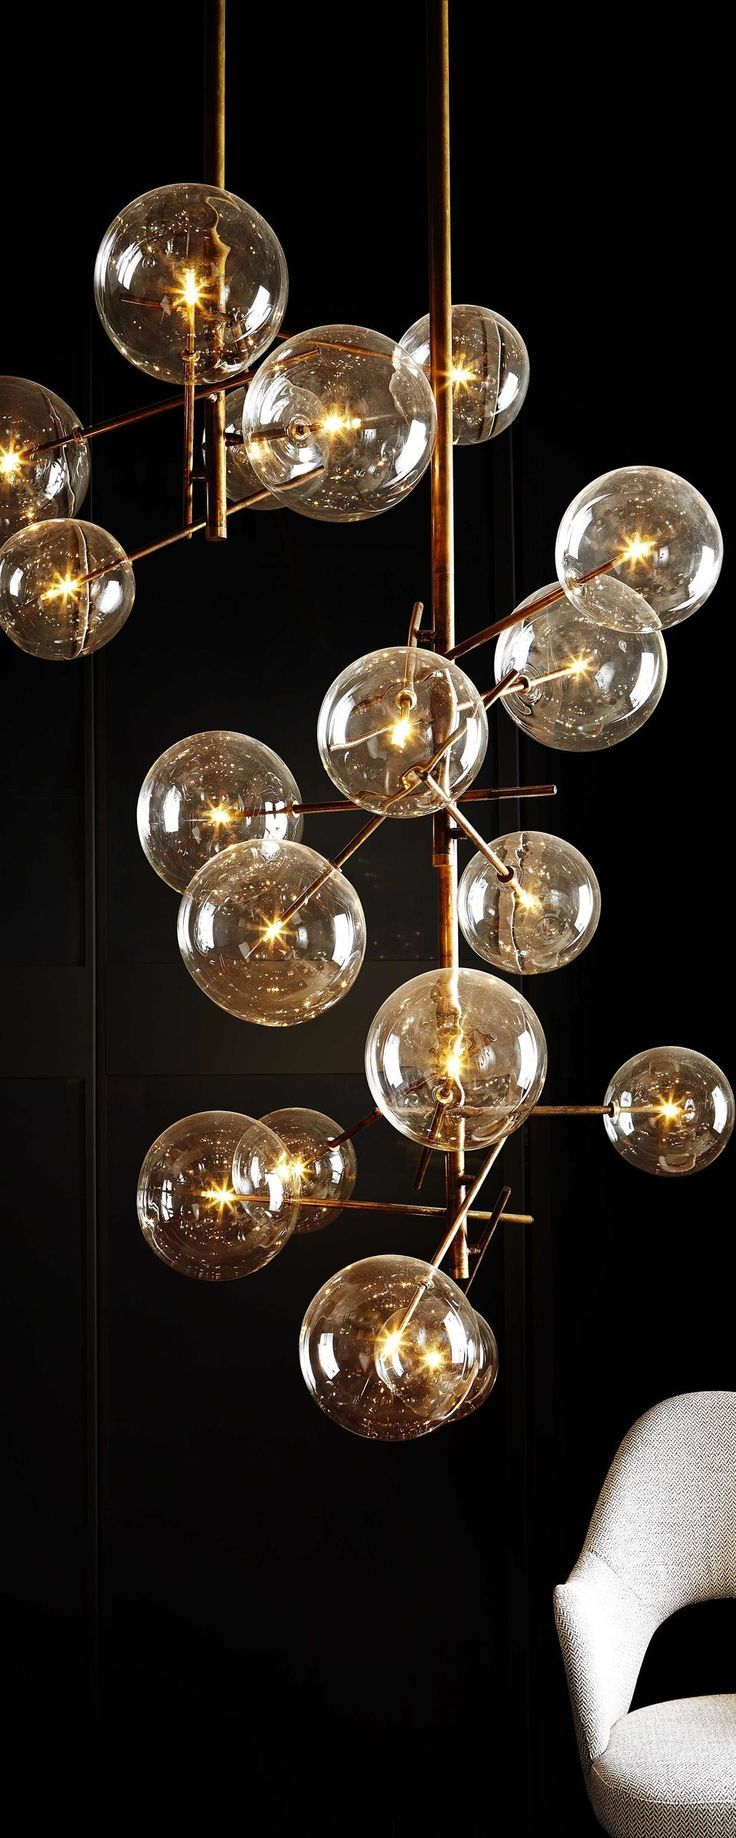 Bolle, Hanging lamp. Metal parts in hand burnished brass. Designed by Massimo Castagna for Gallotti&Radice